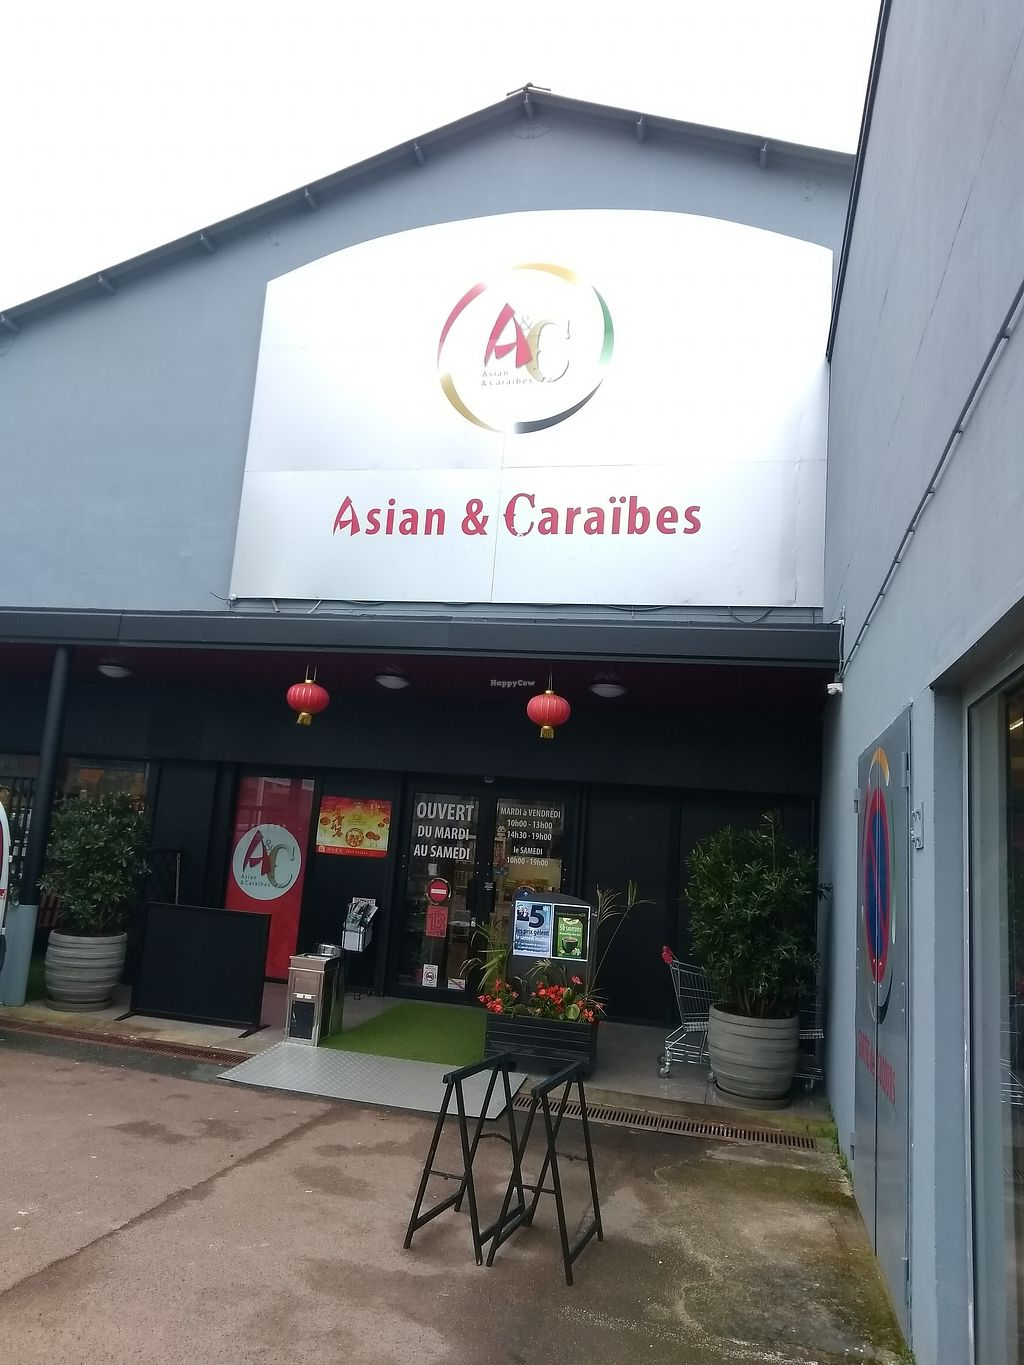 """Photo of Asian and Caribbean  by <a href=""""/members/profile/thenaturalfusions"""">thenaturalfusions</a> <br/>Asian & caribbean <br/> April 1, 2018  - <a href='/contact/abuse/image/116396/379522'>Report</a>"""